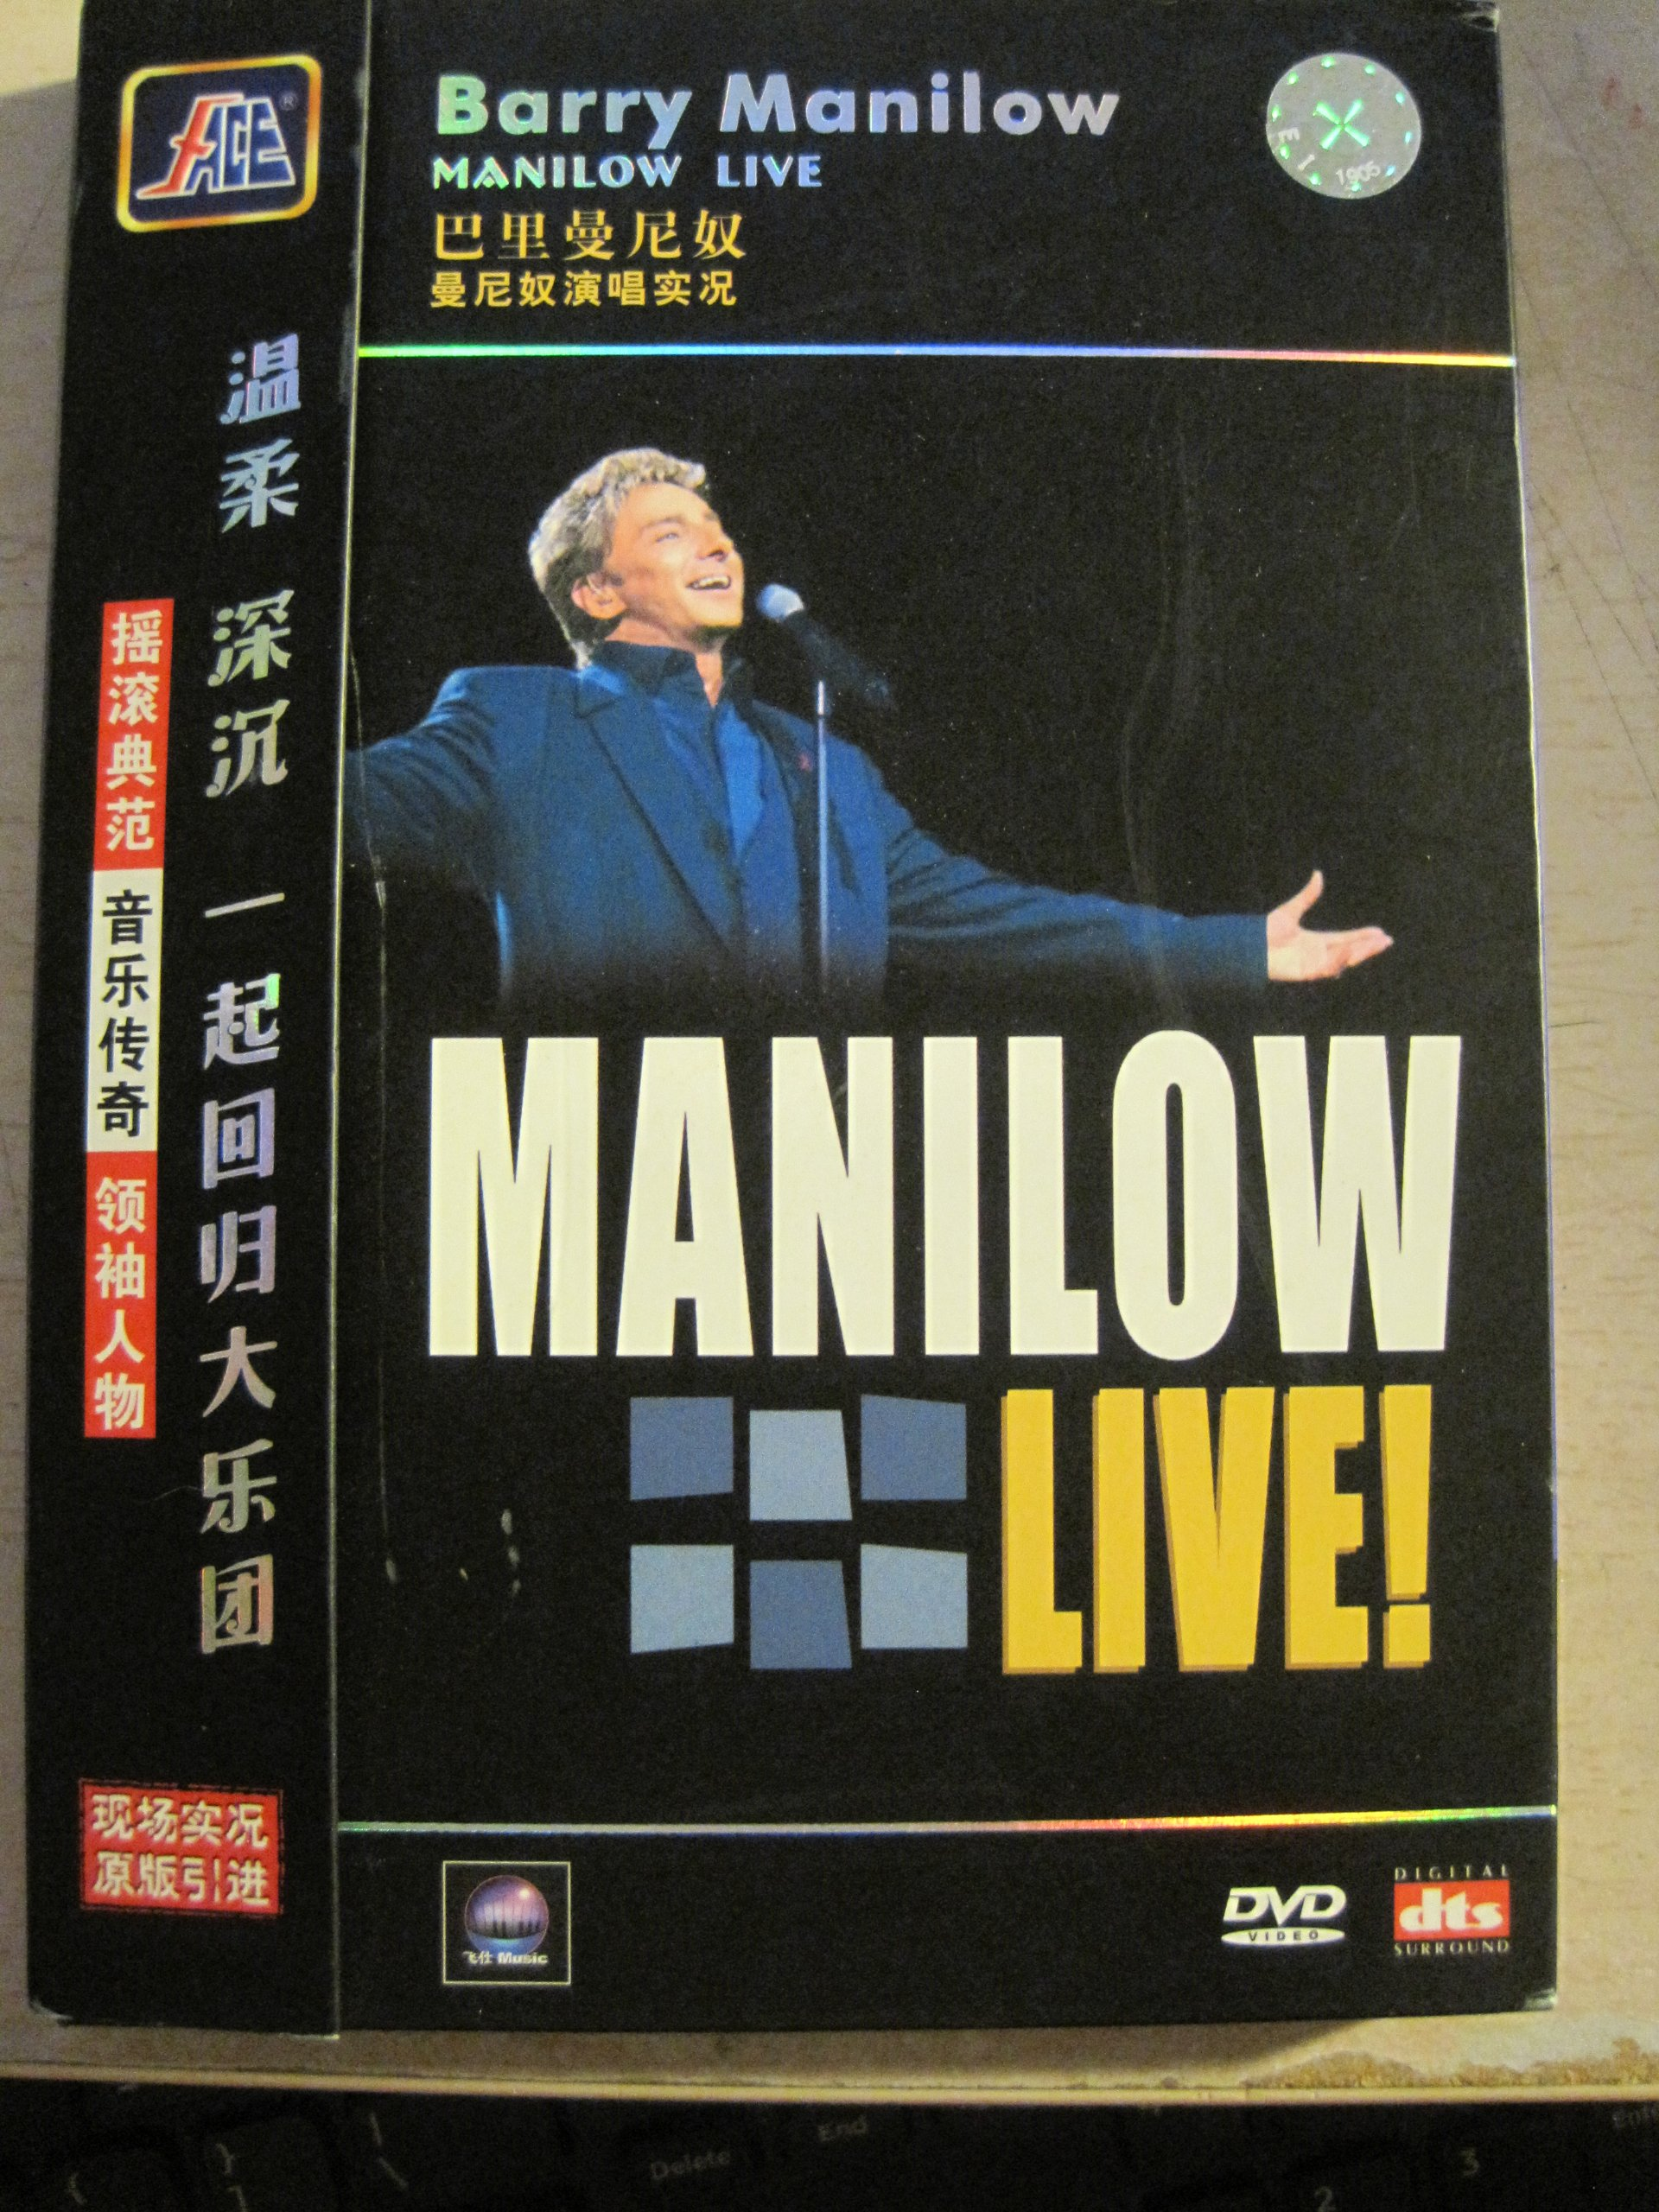 Barry Manilow Manilow Live Karaoke CHINESE by